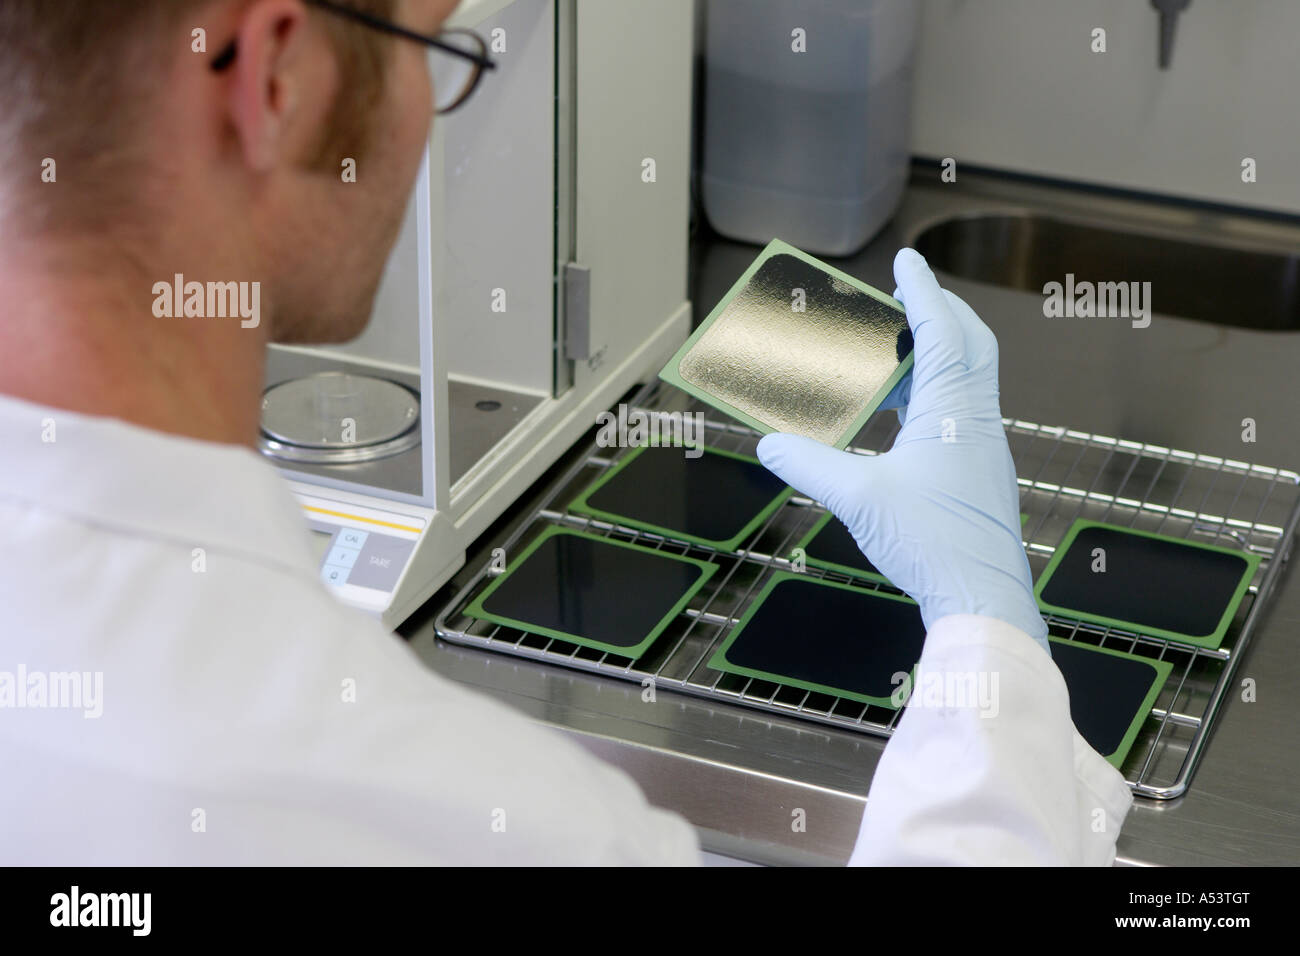 Fuel cell production at the research center in Juelich, Germany - Stock Image